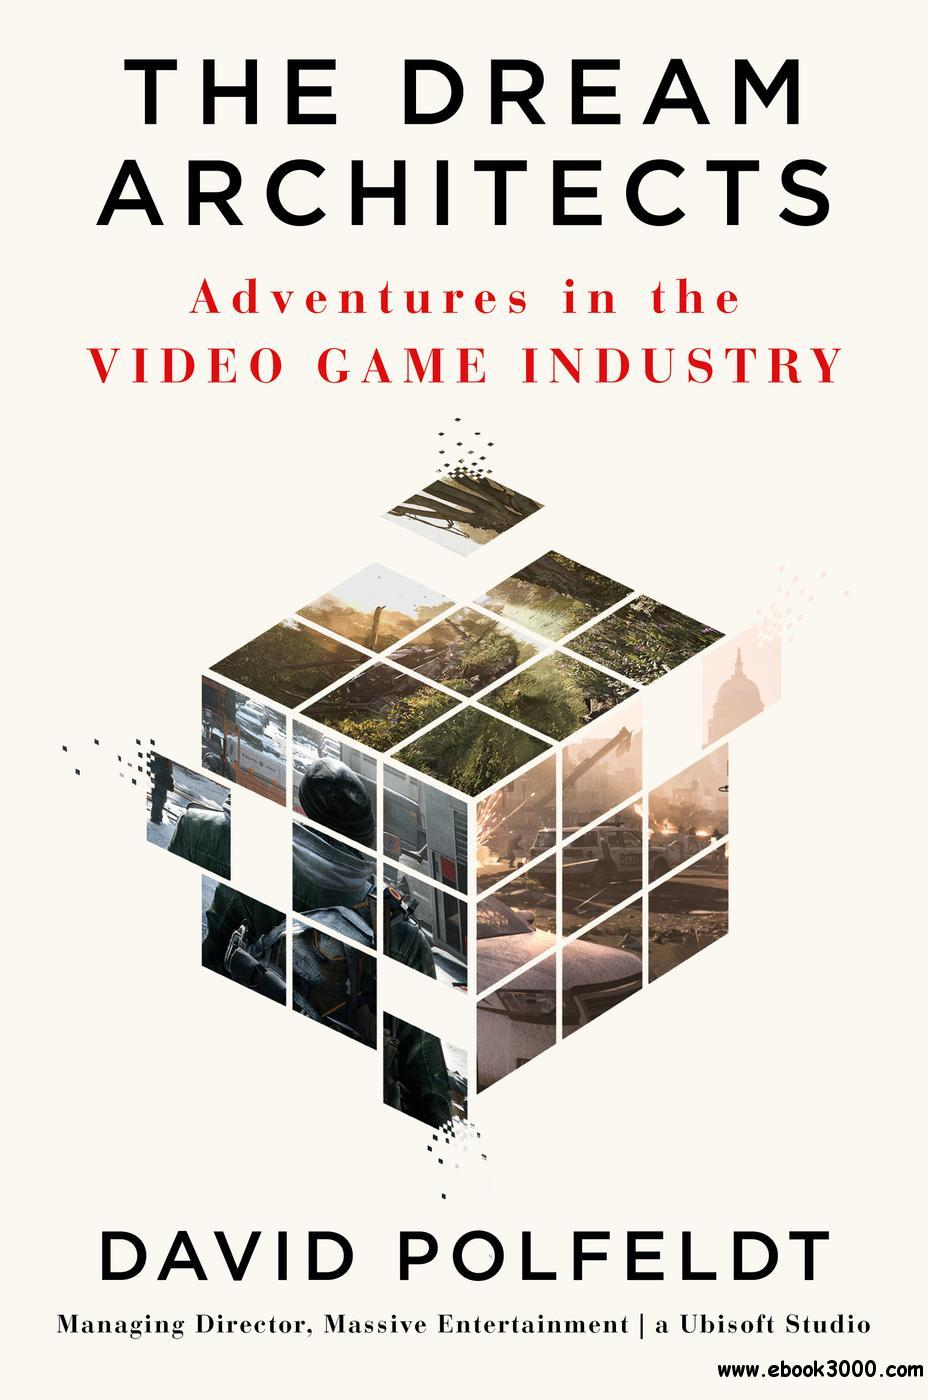 The Dream Architects: Adventures in the Video Game Industry